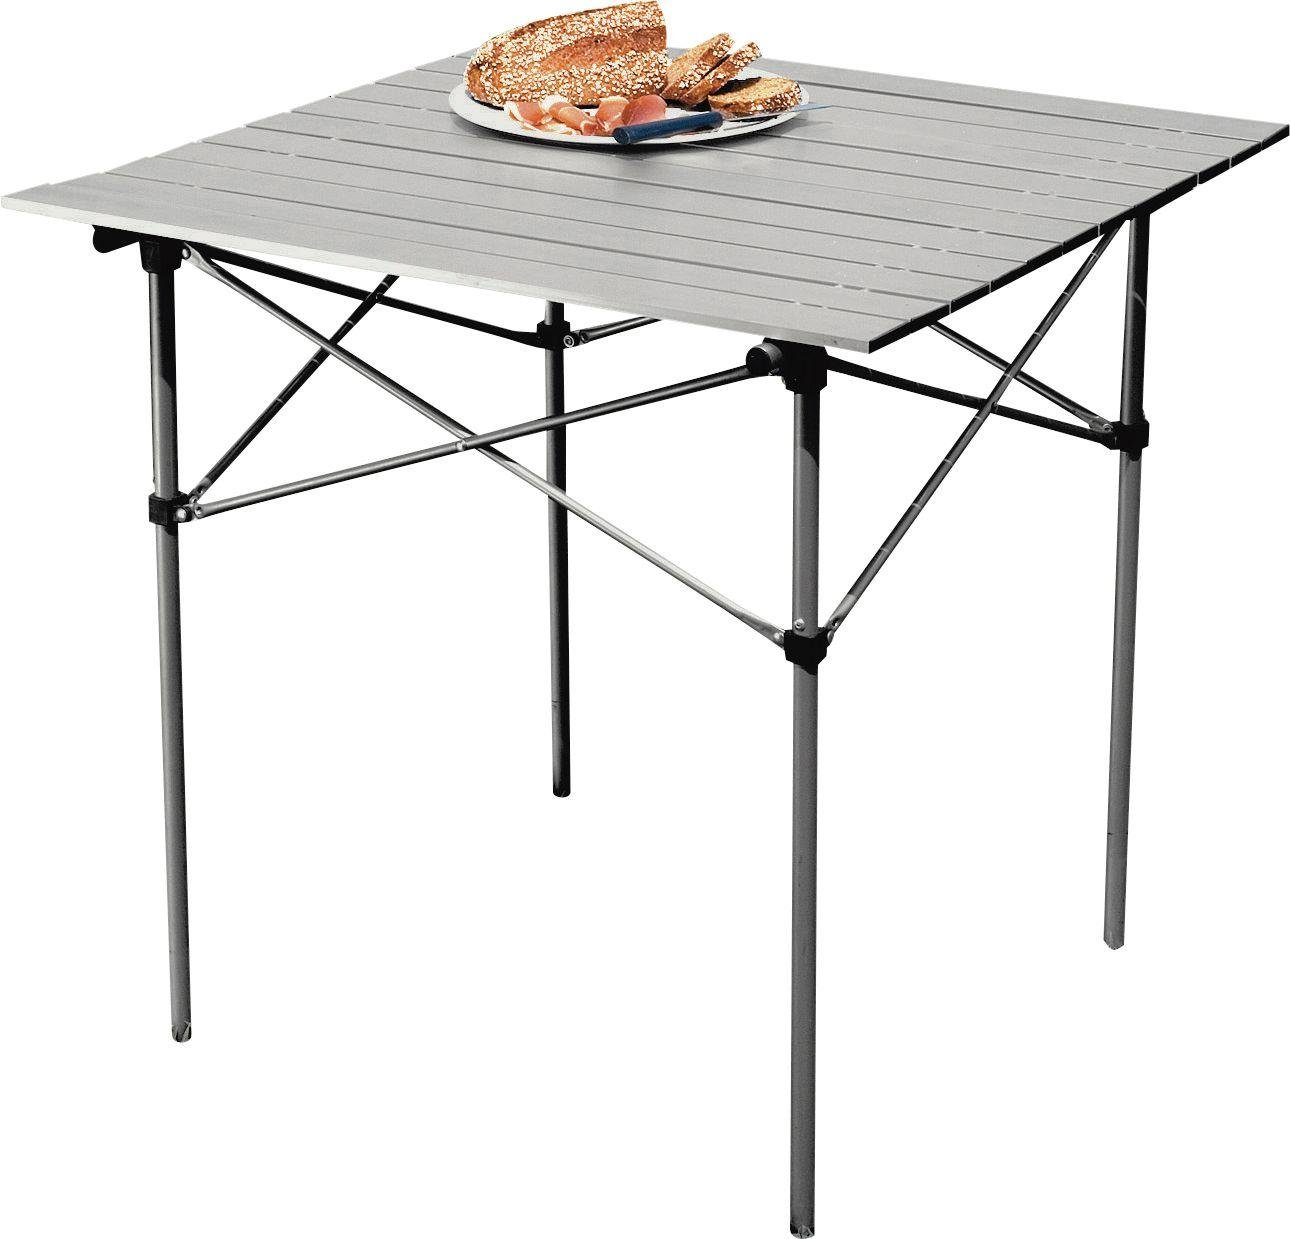 folding chairs argos foam toddler chair canada aluminium camping table with slatted top review